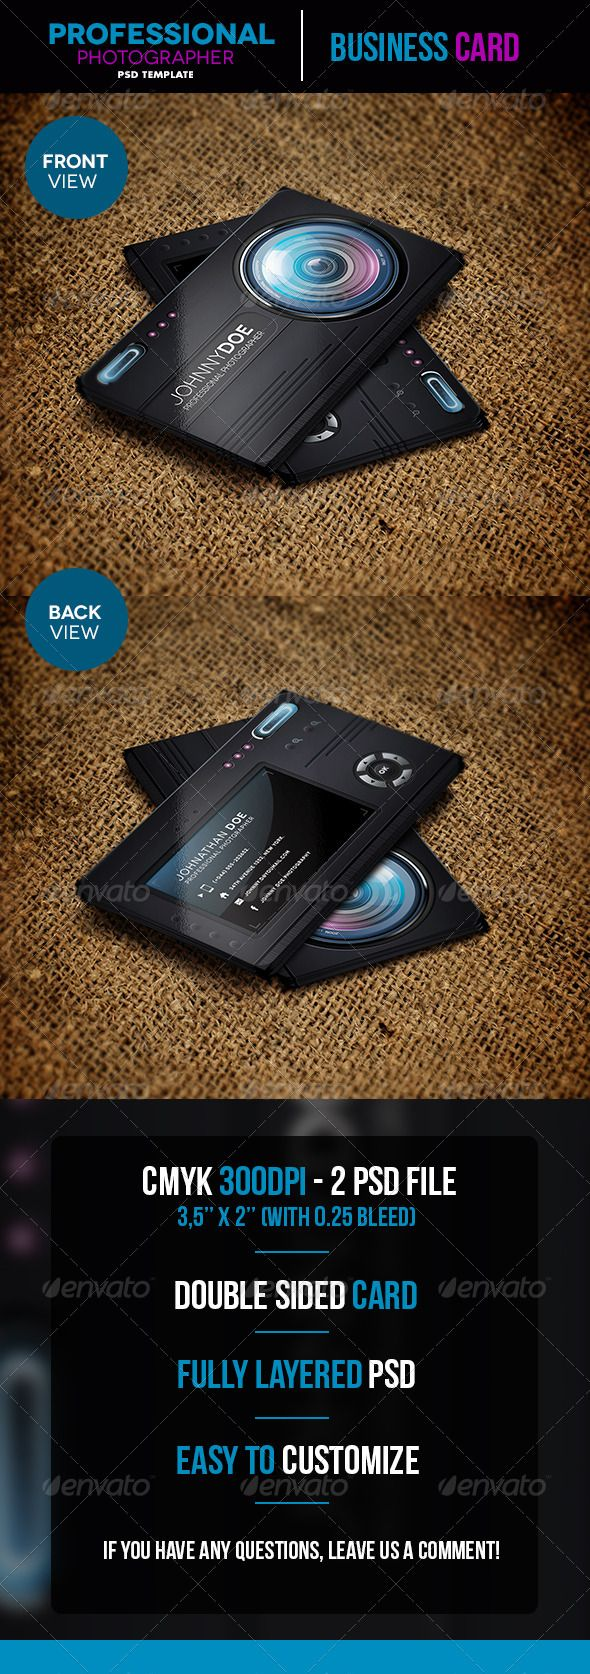 Professional photographer business card template psd download here photographer business card template psd download here httpgraphicriveritemprofessional photographer business card5448242srank92ref wajeb Choice Image